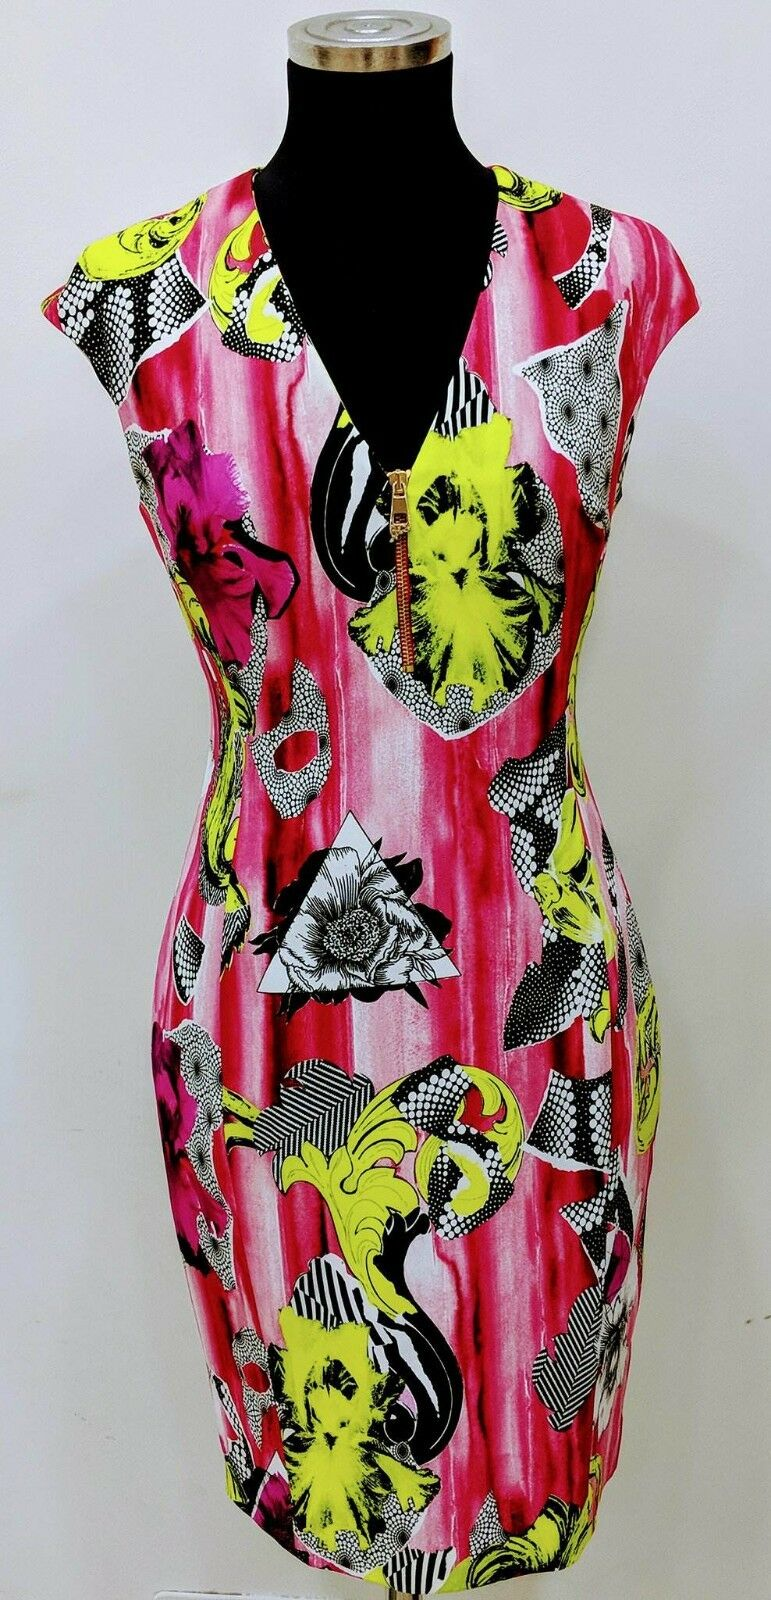 NWT Versace Collection Print Sheath BAROQUE Dress MADE IN ITALY 10 US LUXURY